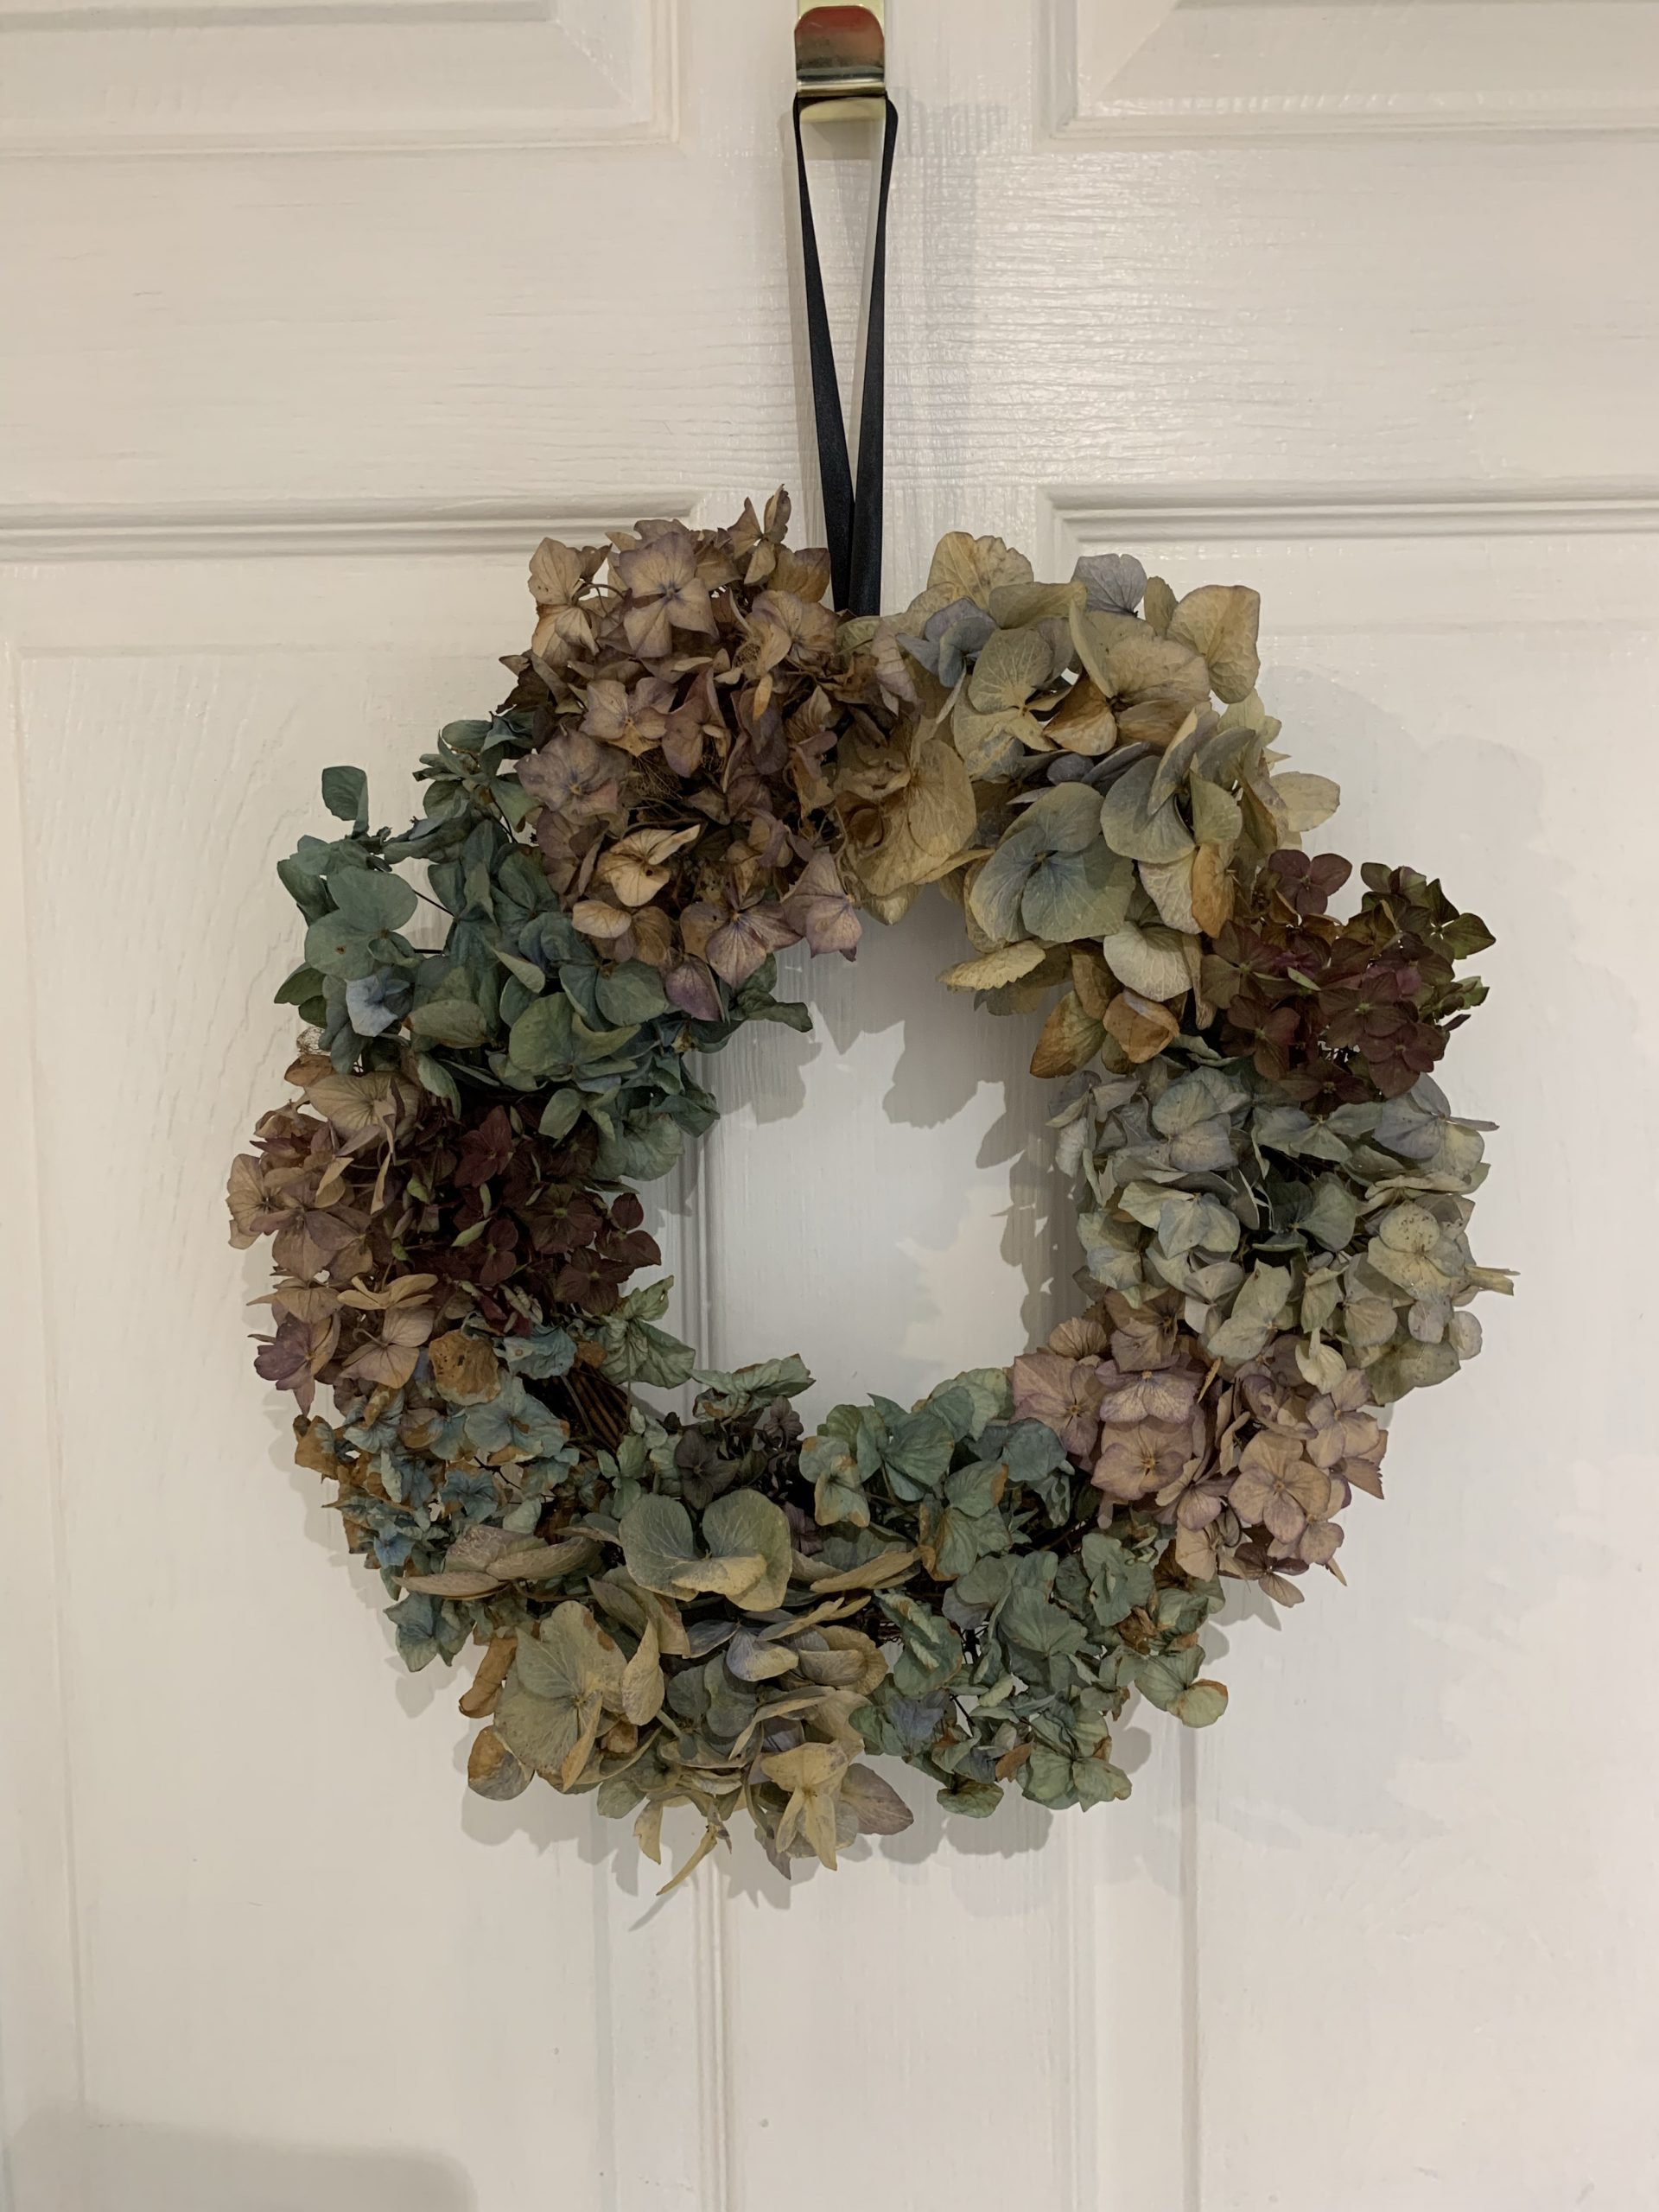 How to Dry Hydrangeas and Make a Wreath for Fall